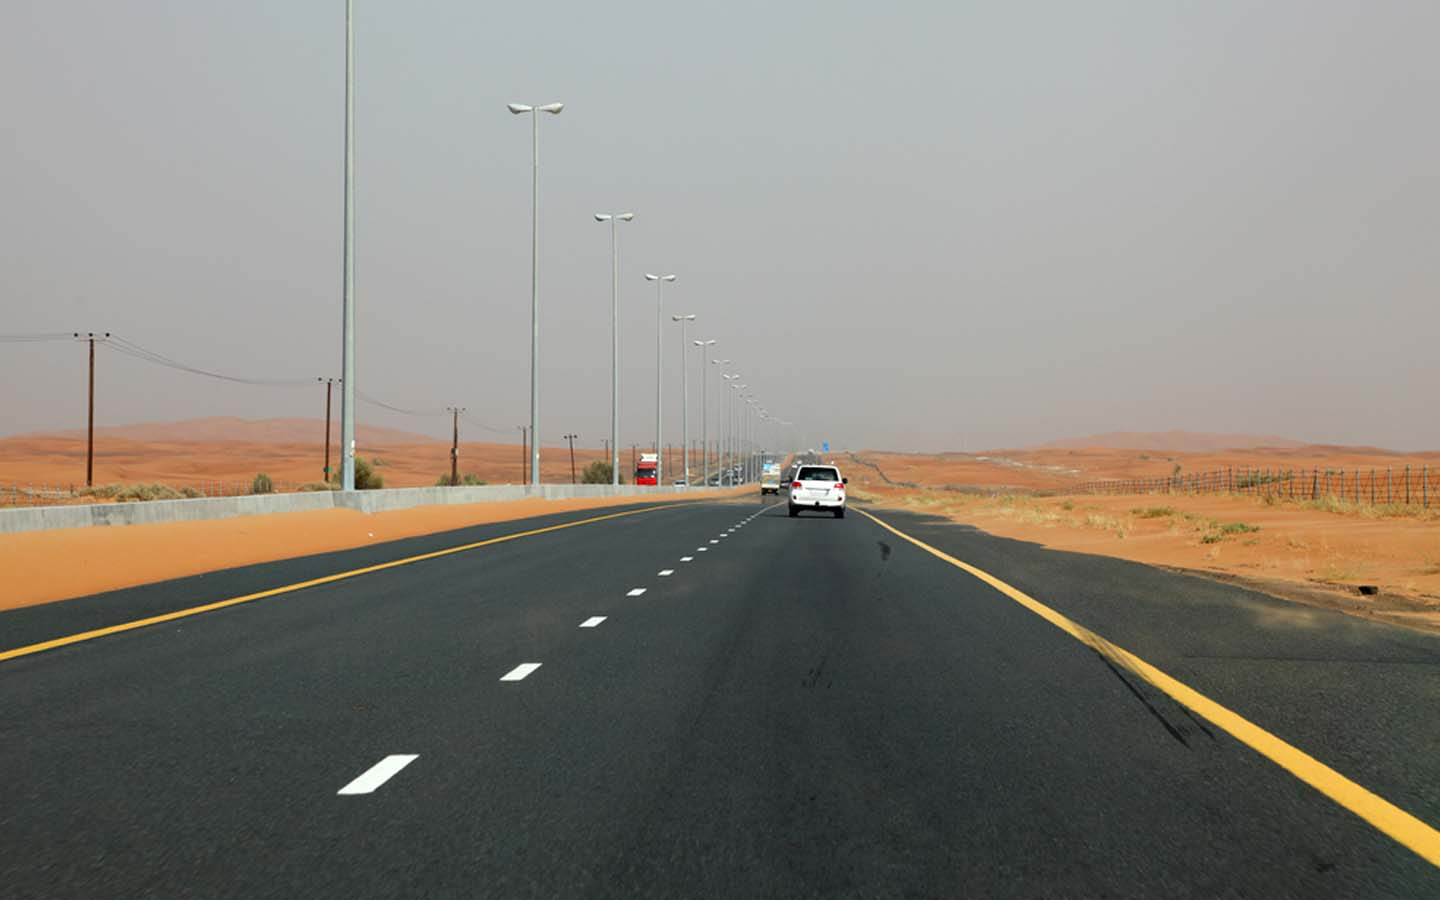 highway in the UAE desert